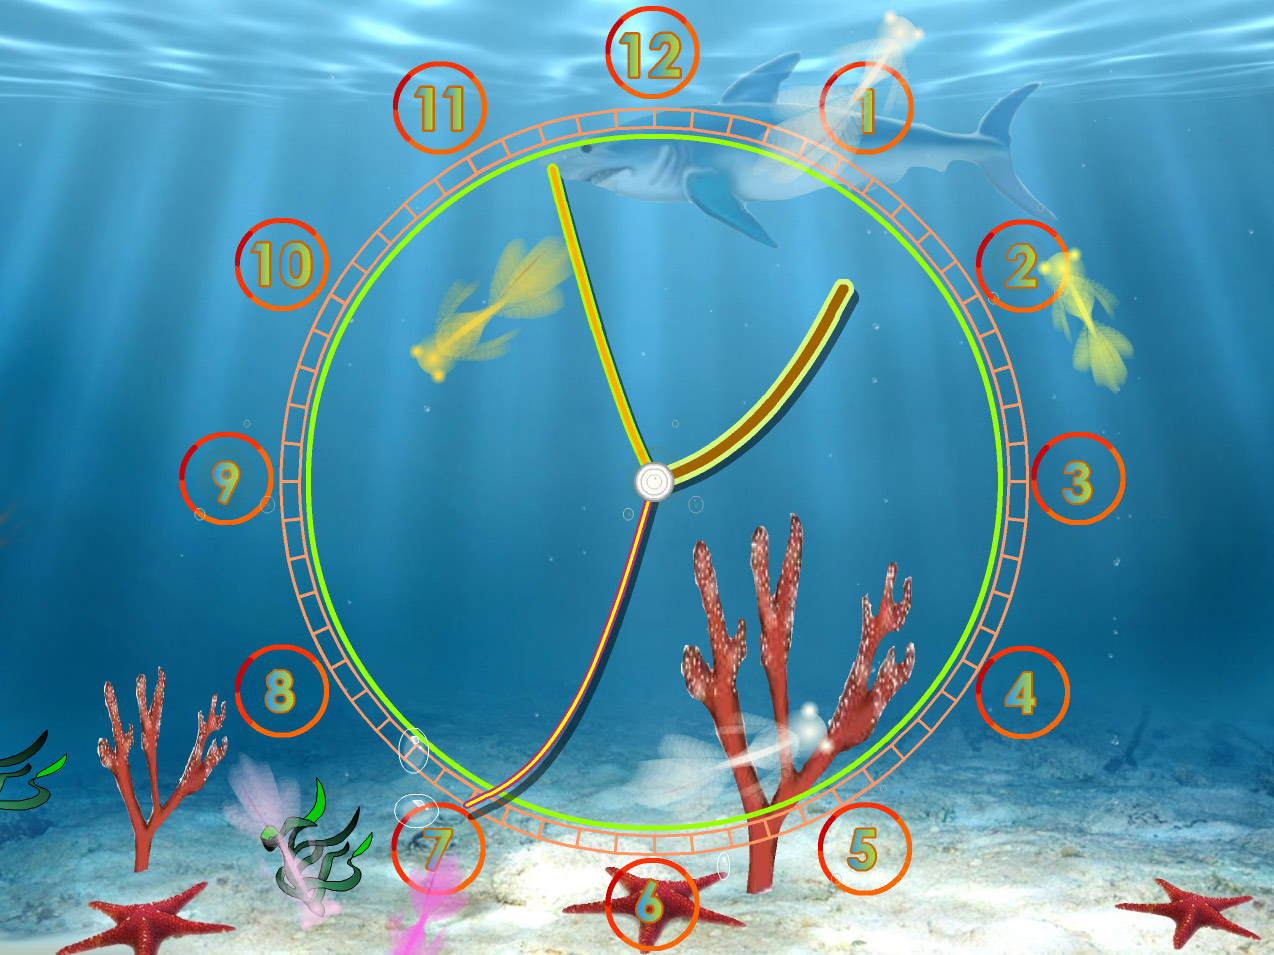 Aquarium Clock screensaver even aquarium fishes want to know the 1274x955